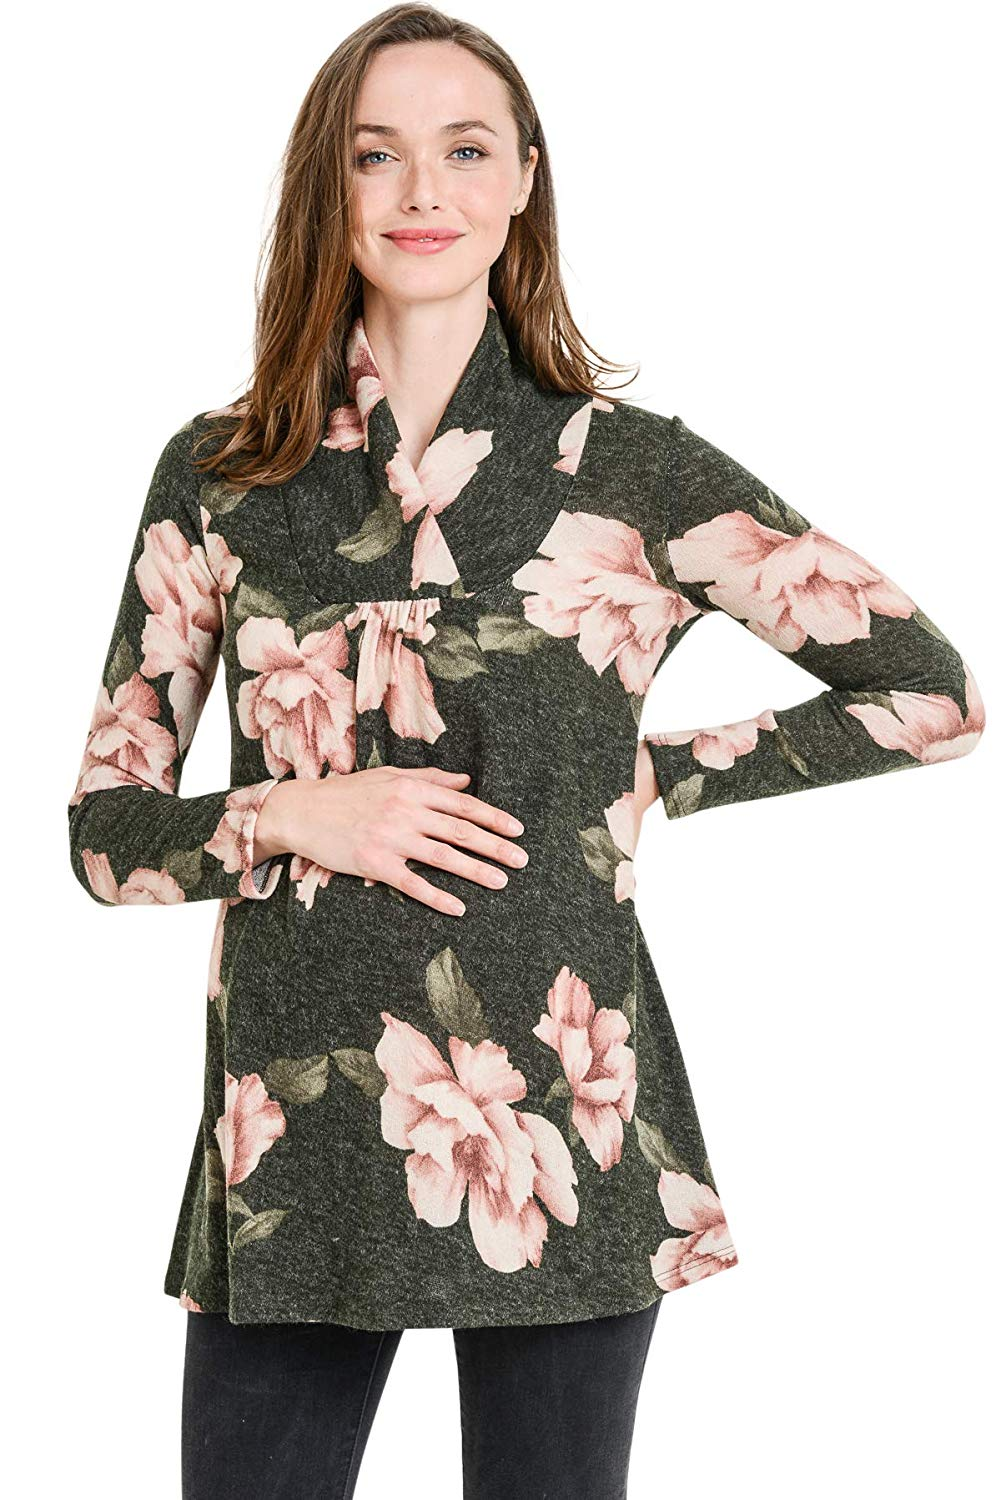 Floral Knit Maternity Tunic Top